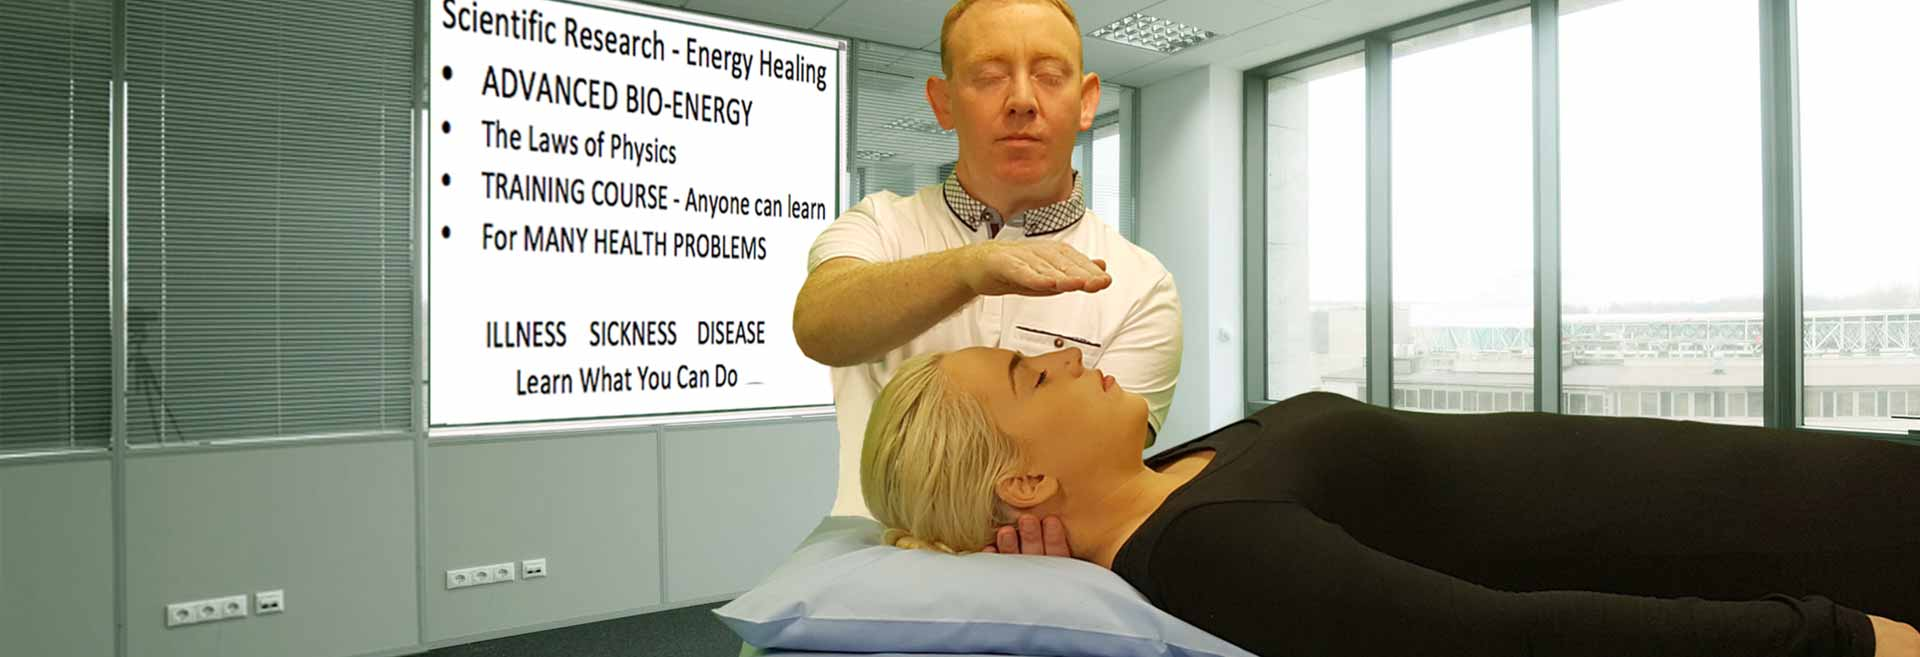 Scientific Research on Energy Healing Methods and Techniques